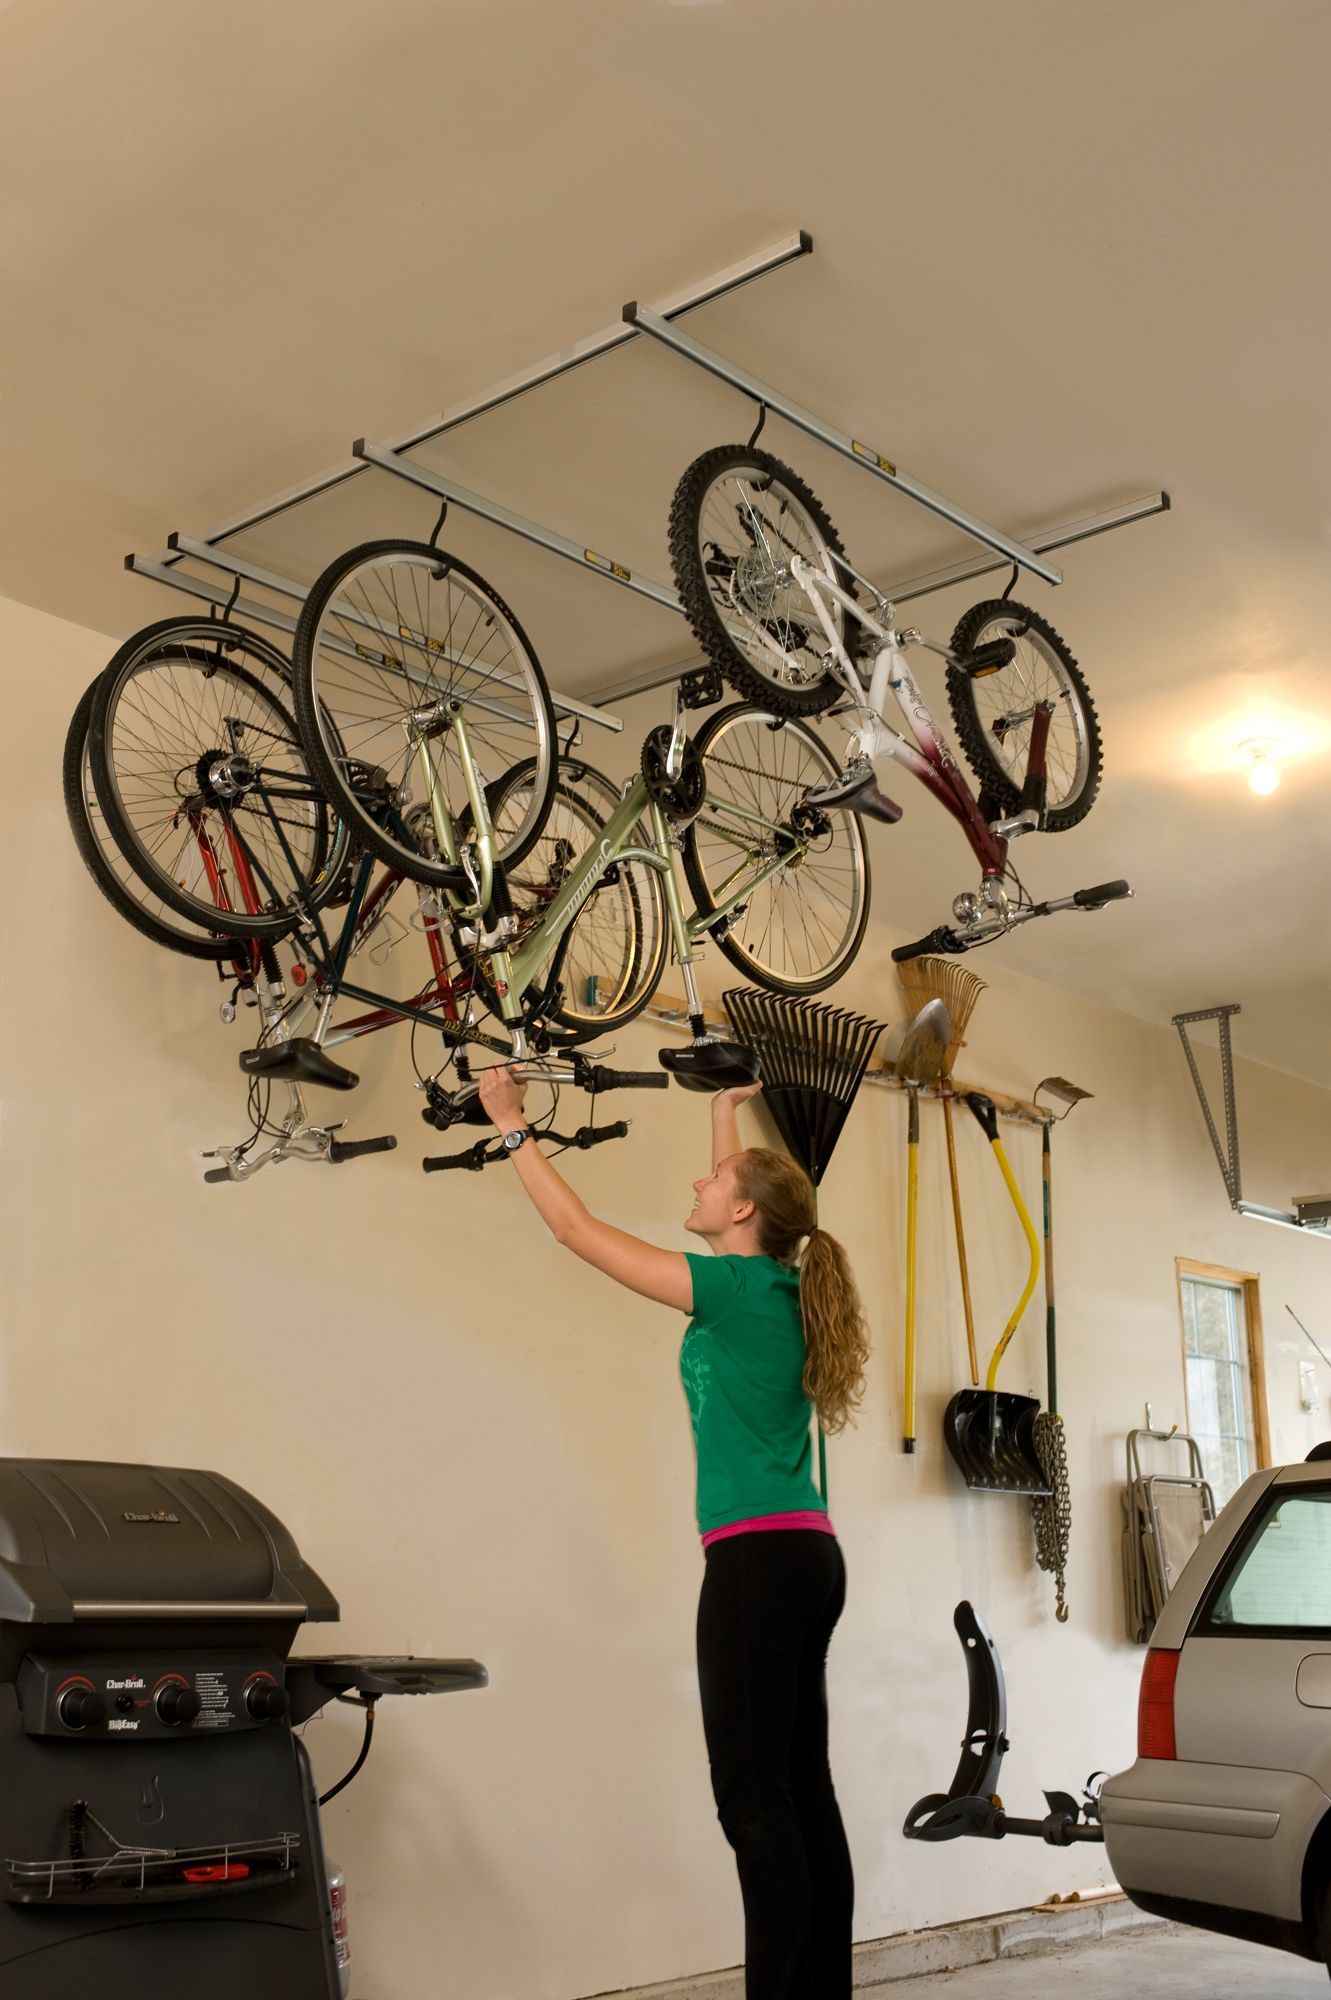 garage bike inside creative pin modern style ideas house metal rack the amazing bicycle designed storage